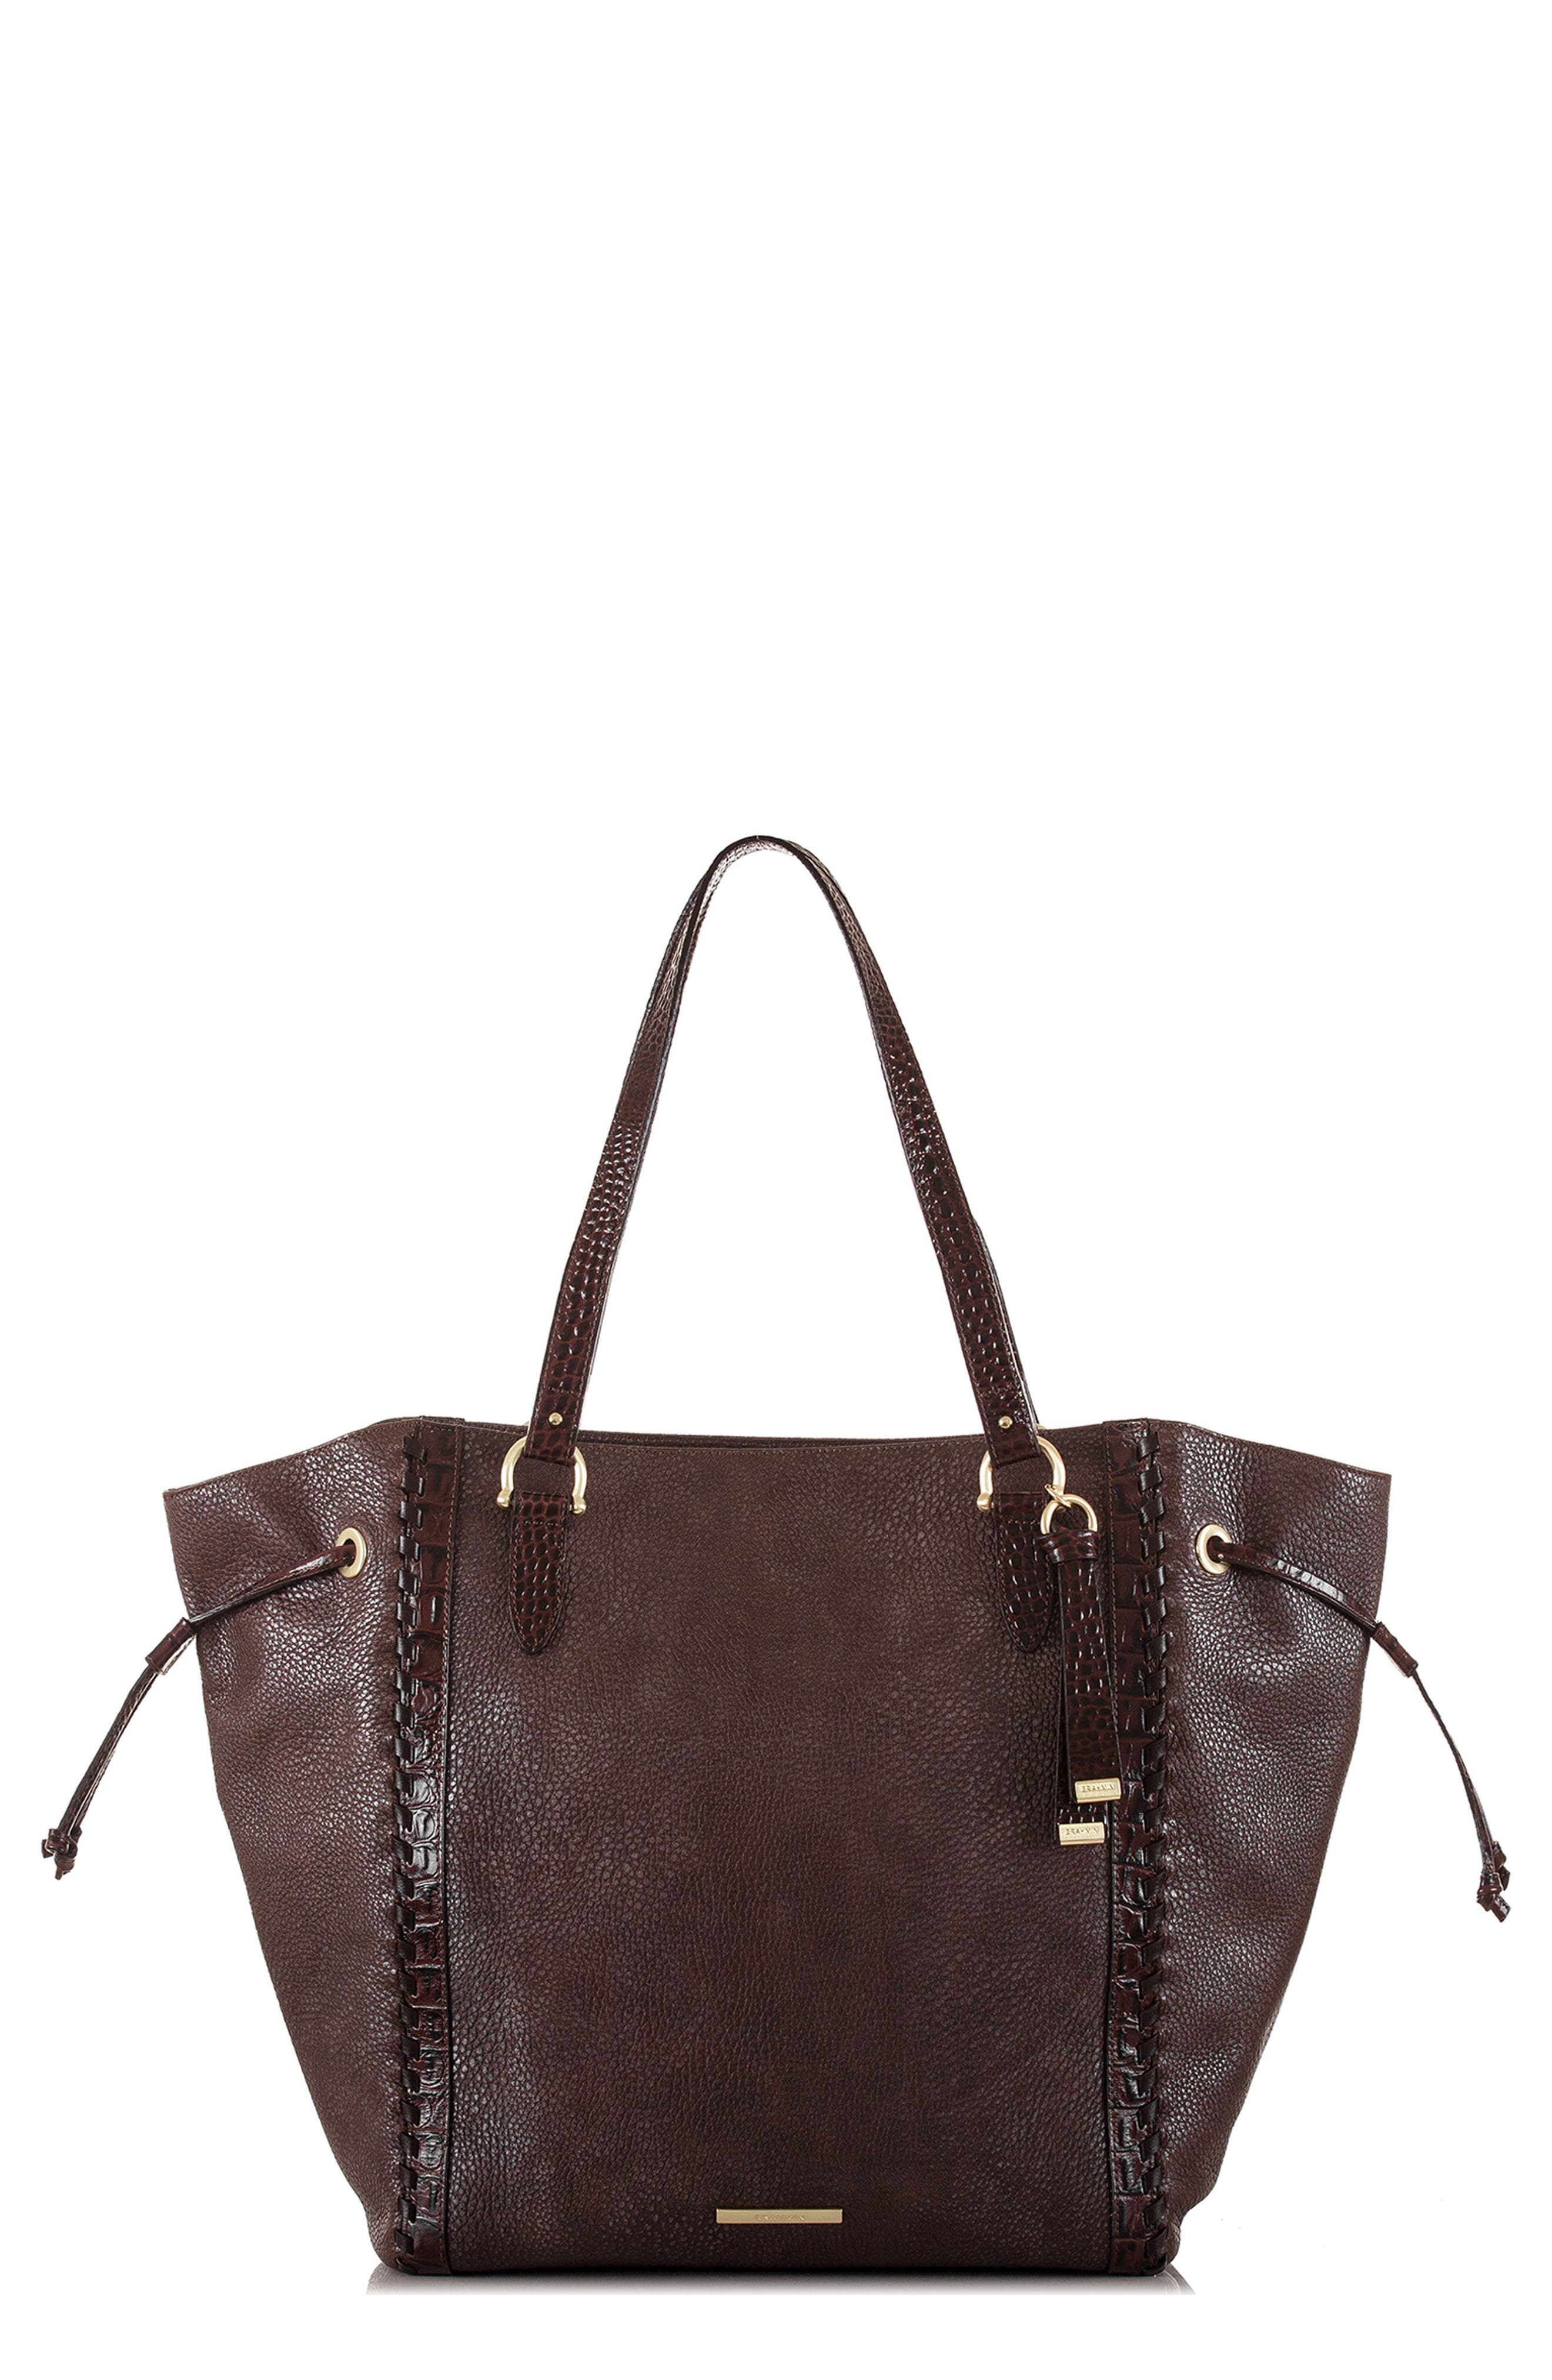 Southcoast Cheyenne Leather Tote,                             Main thumbnail 1, color,                             200